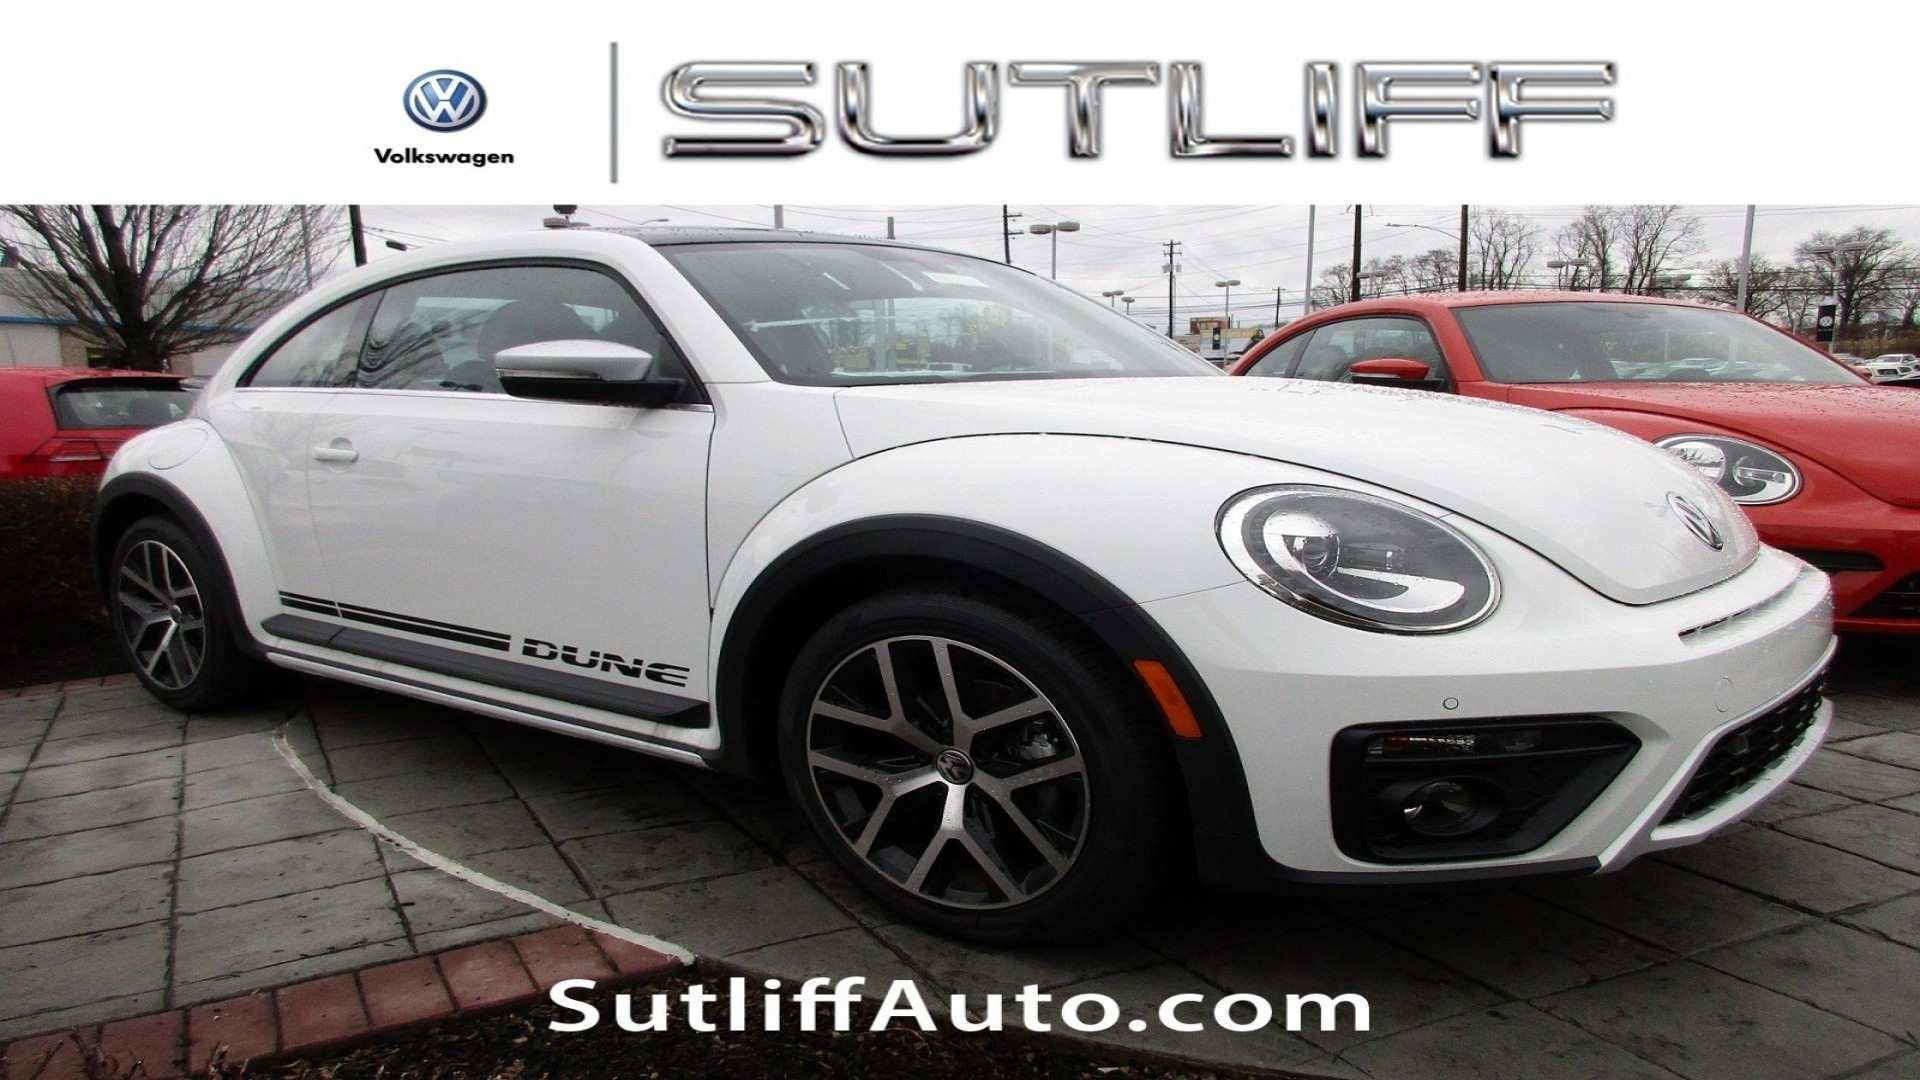 44 All New 2019 Volkswagen Beetle Dune Review